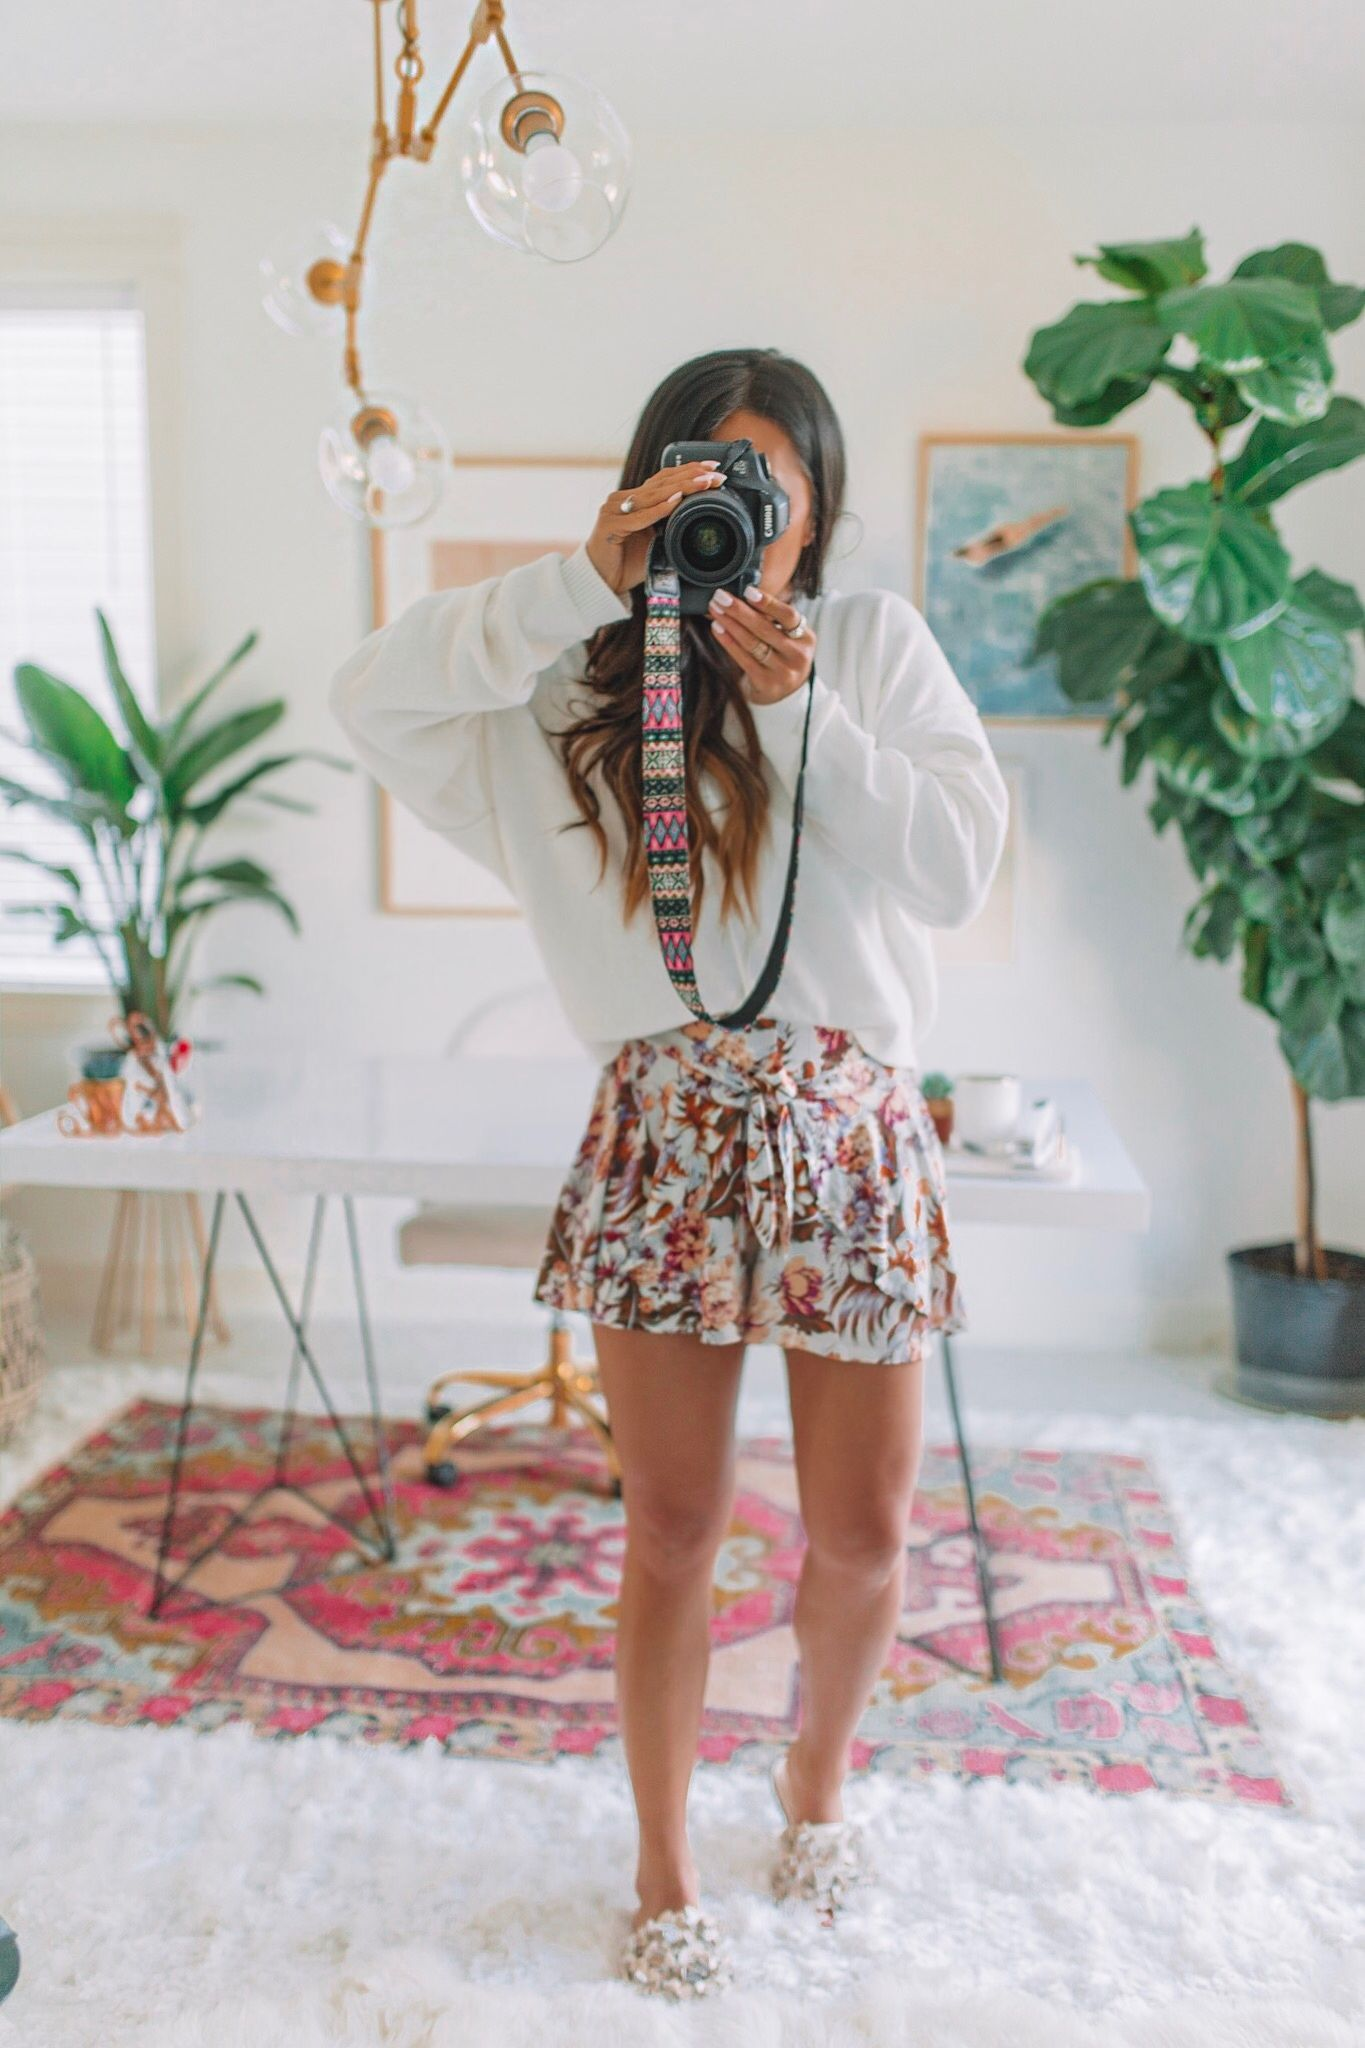 My camera equipment for blogging and instagram how to